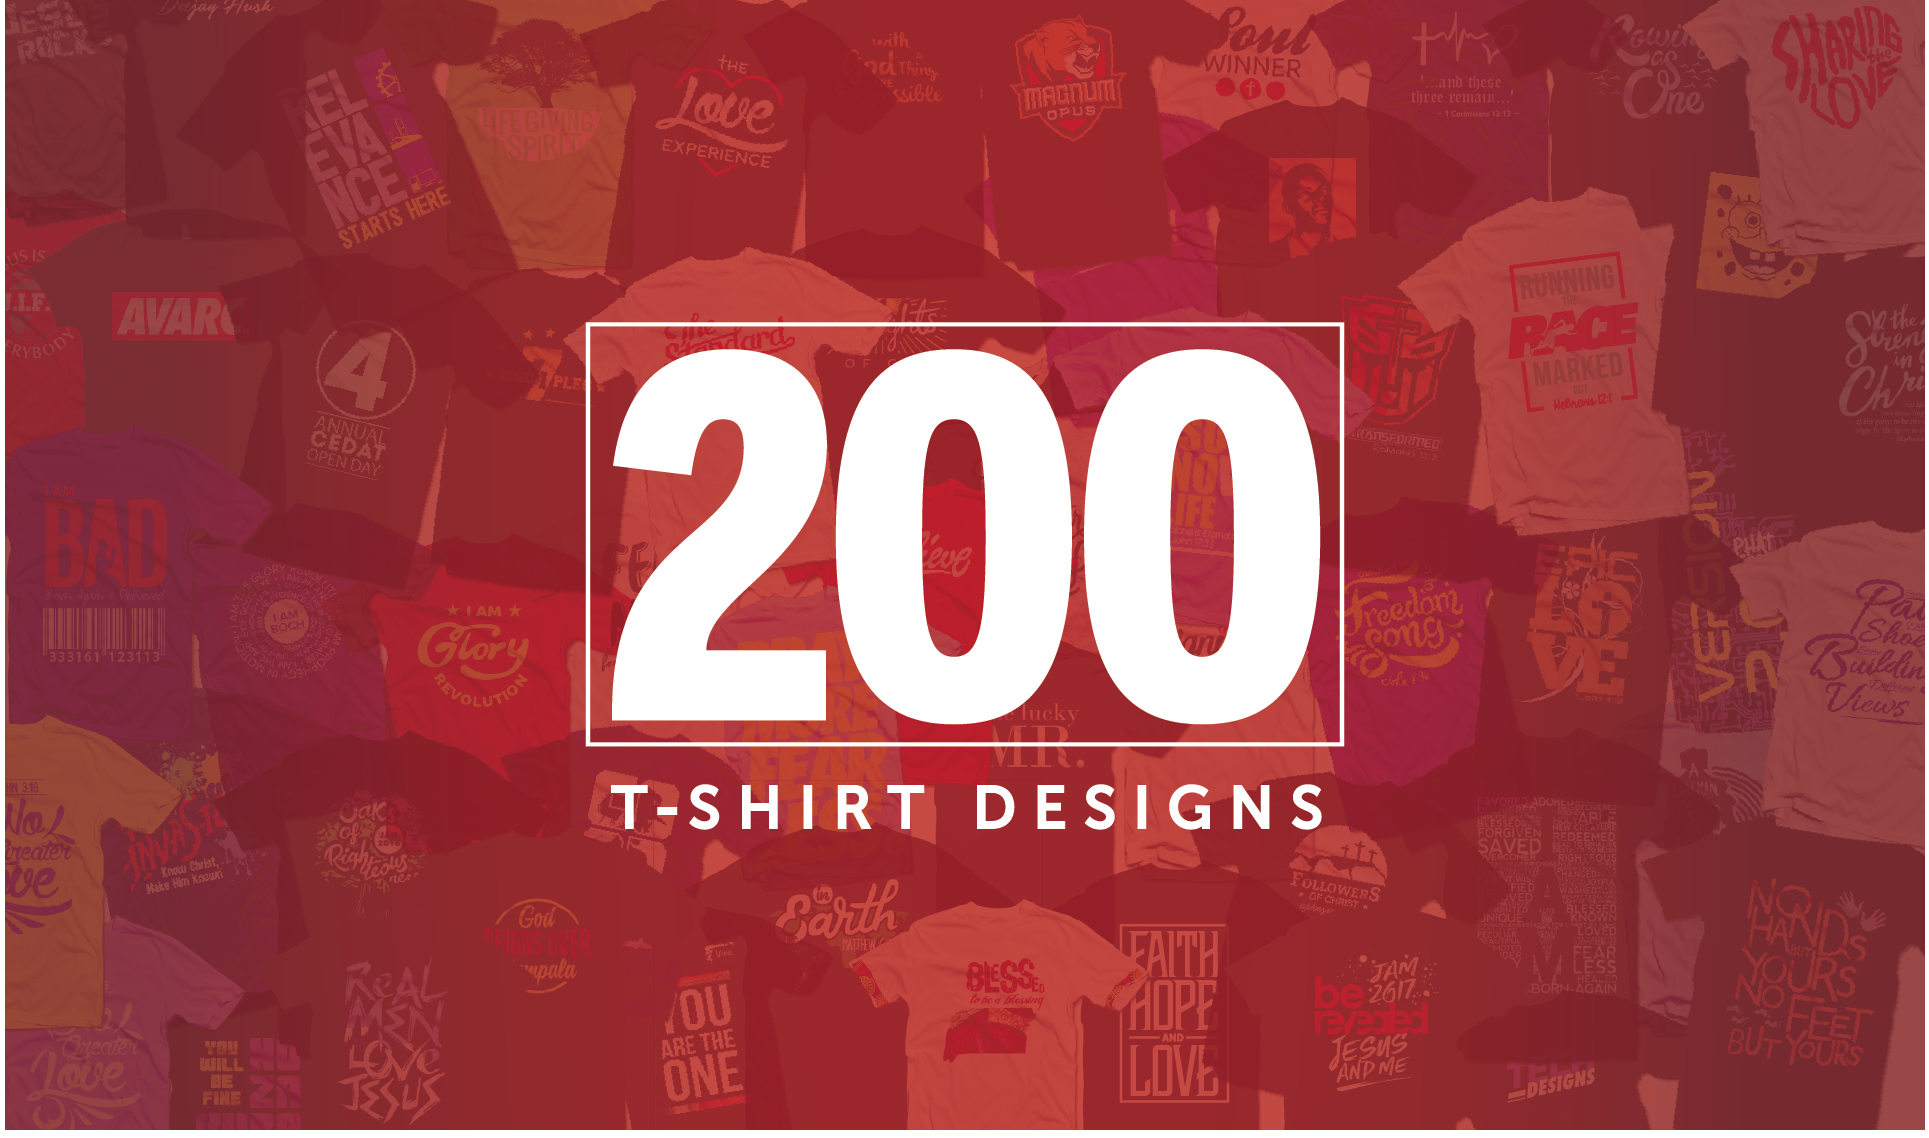 Startup Lessons From Creating 200 T Shirt Designs Avarc Media